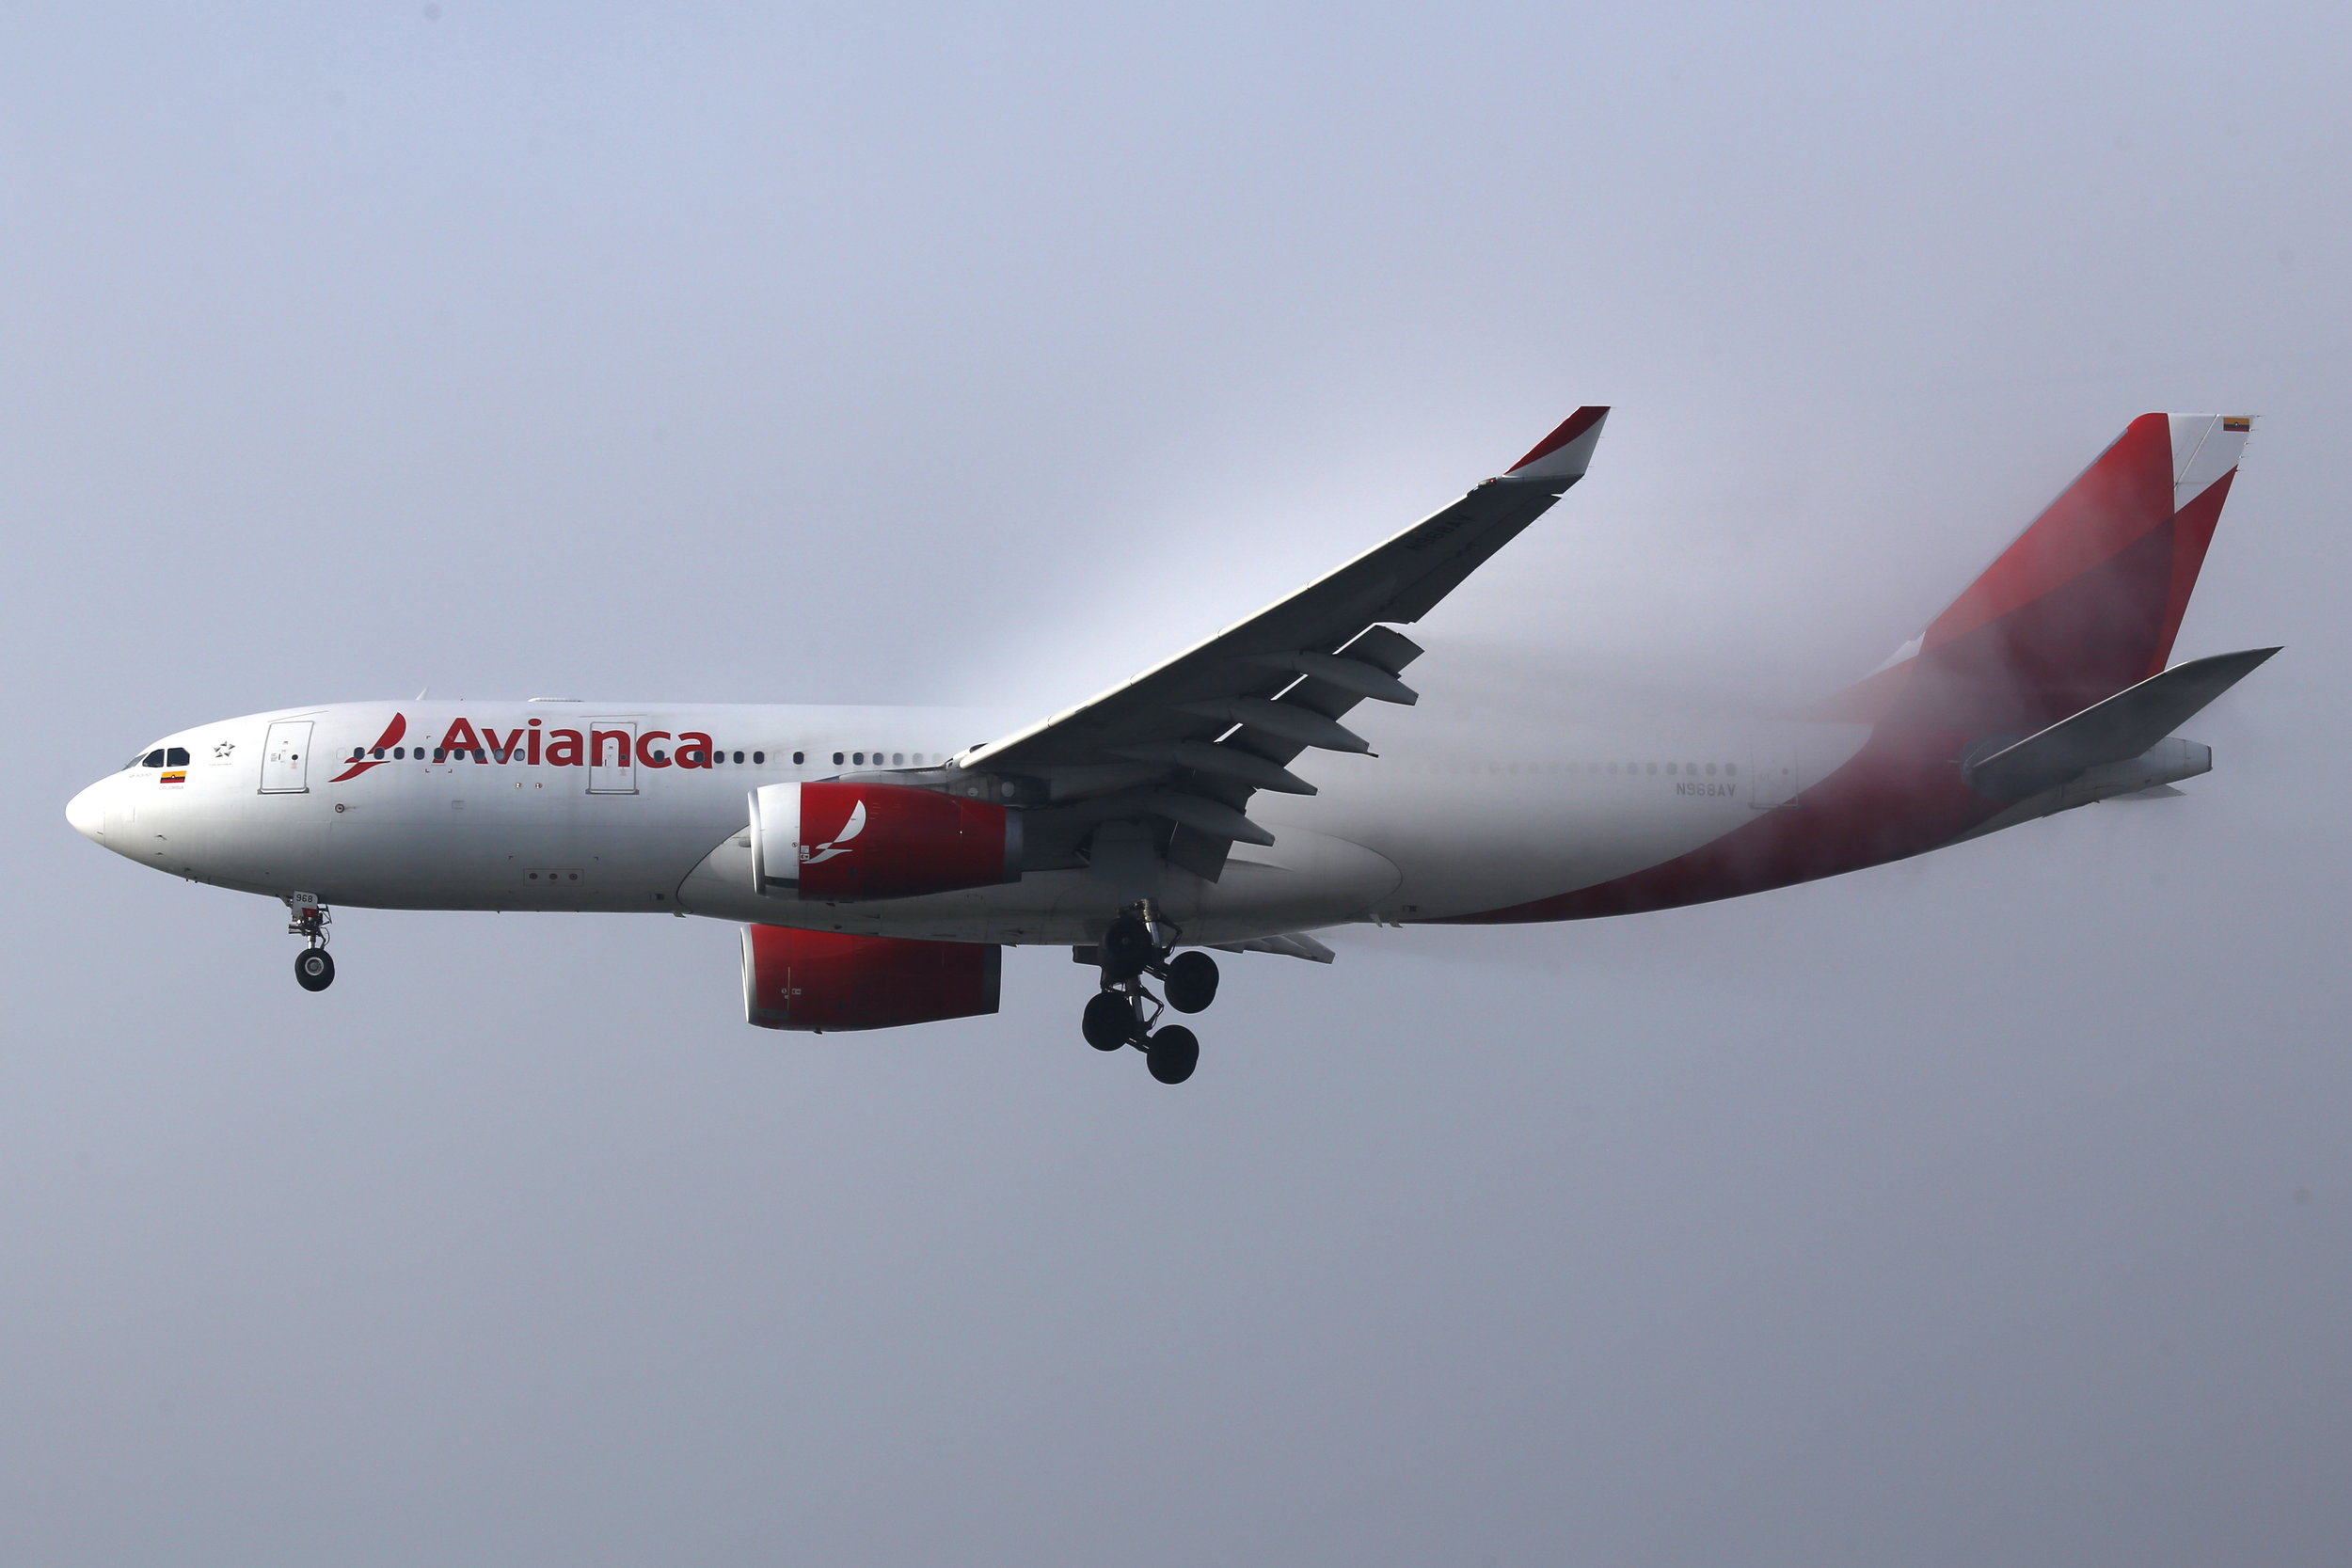 N968AV Avianca A330-200 taken from the roof of the Matiz Hotel at Sao Paulo Guarulhos Airport 27th April 2019 on a foggy morning by John Wood